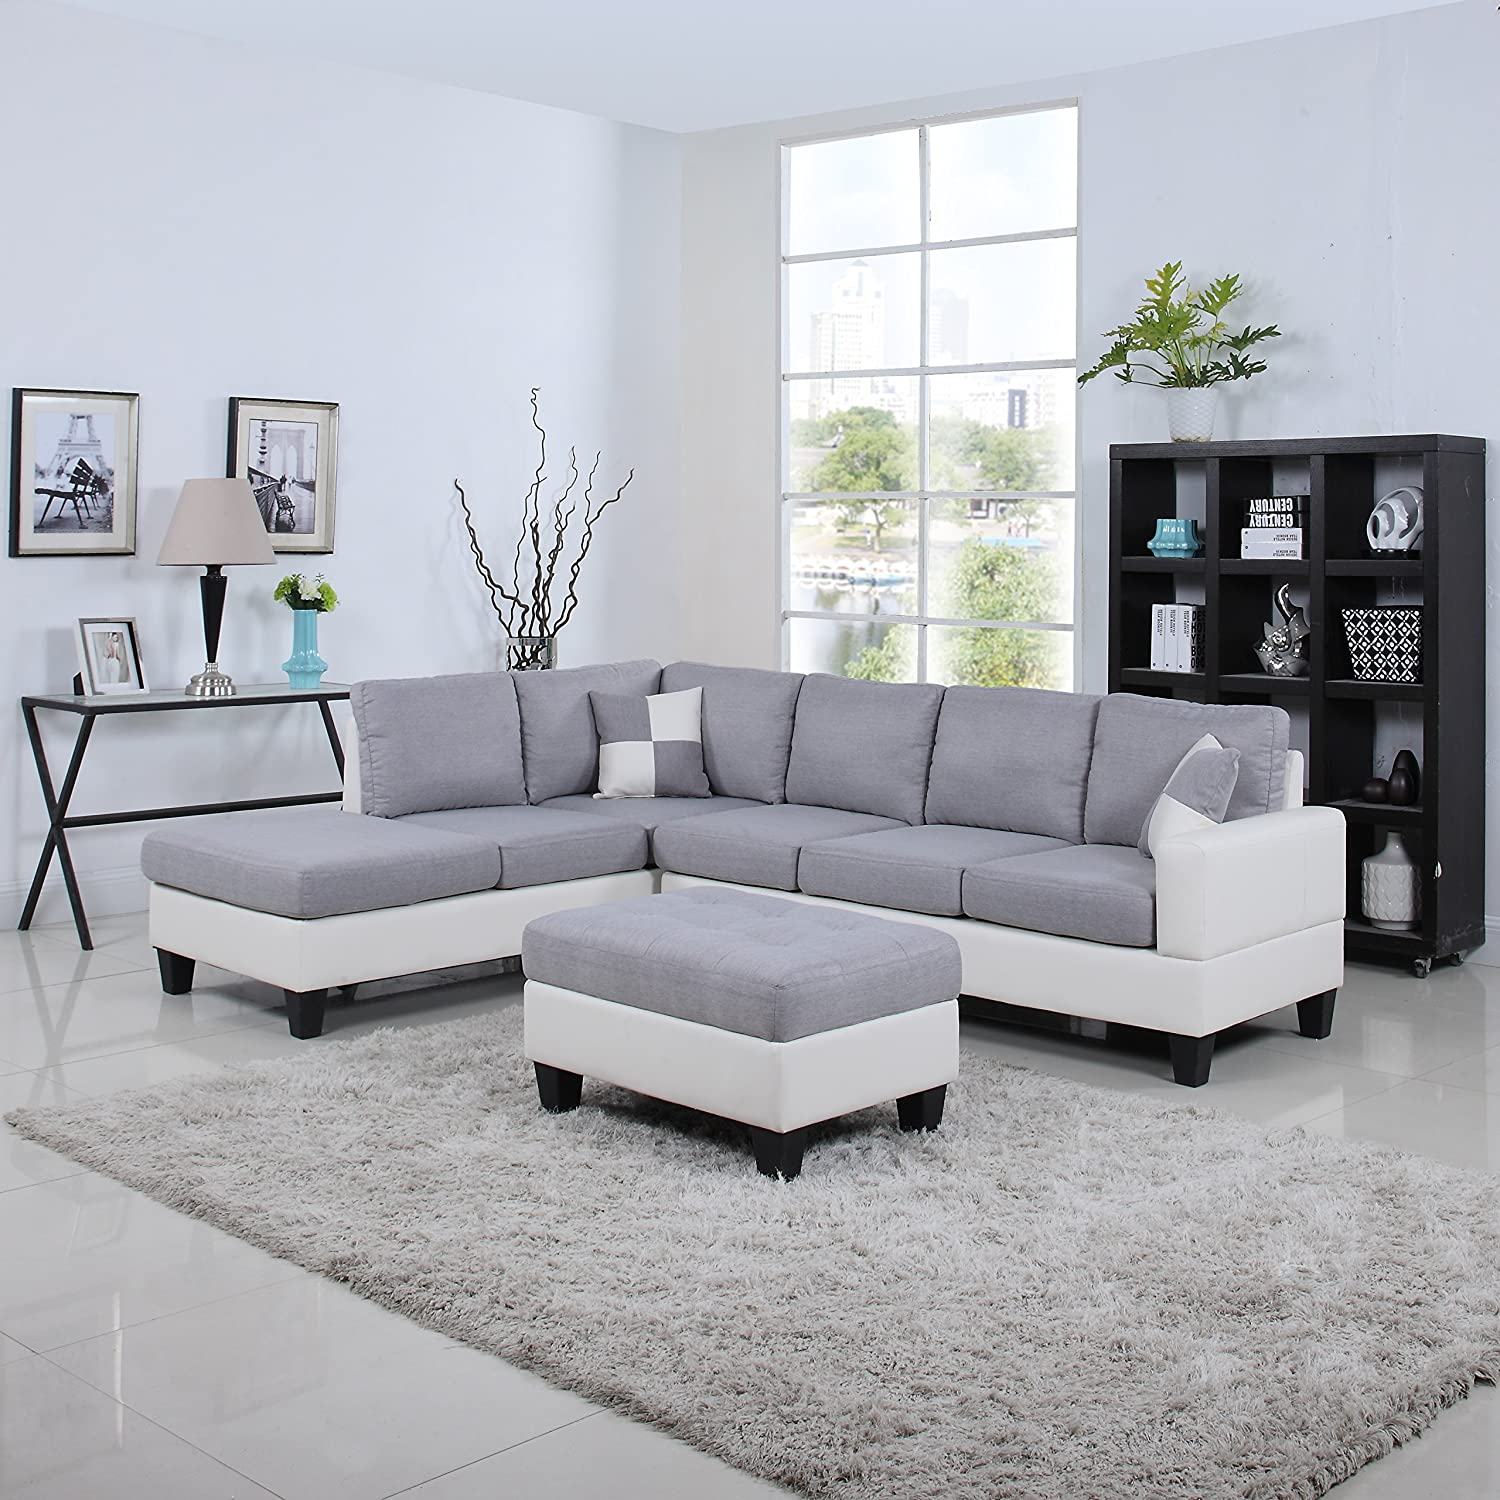 Best Sectional Sofa Reviews and Buying Guide - Home & Garden